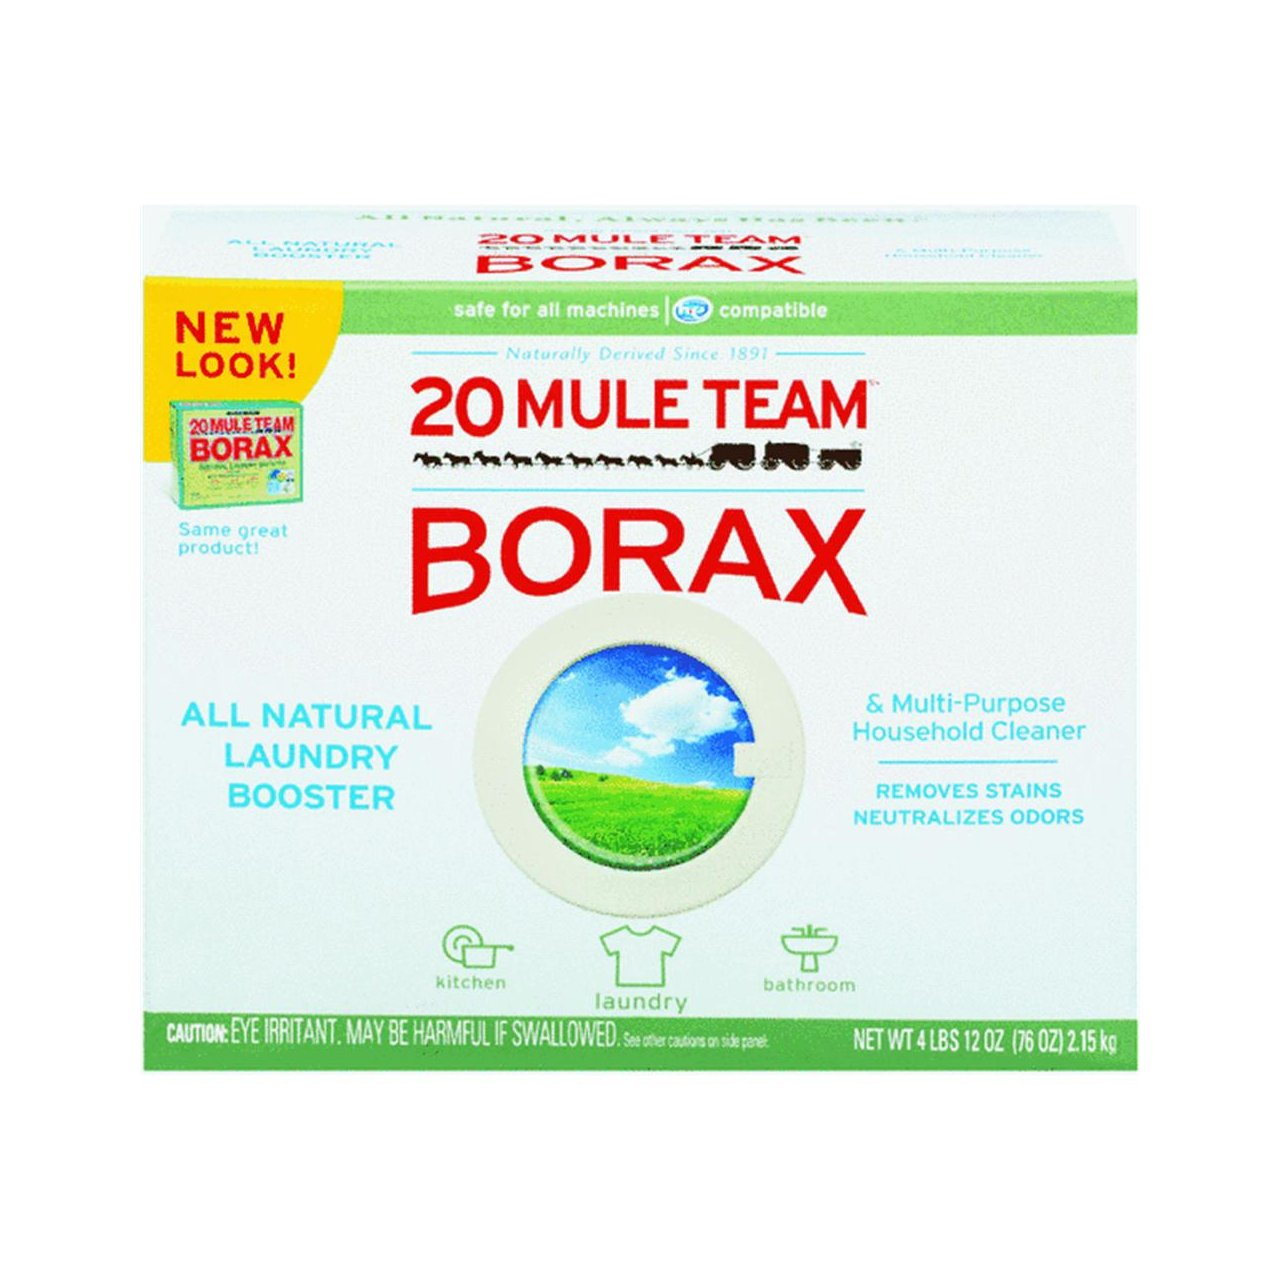 BORAX 20 Mule Team Laundry Booster, Powder, 4 Pounds